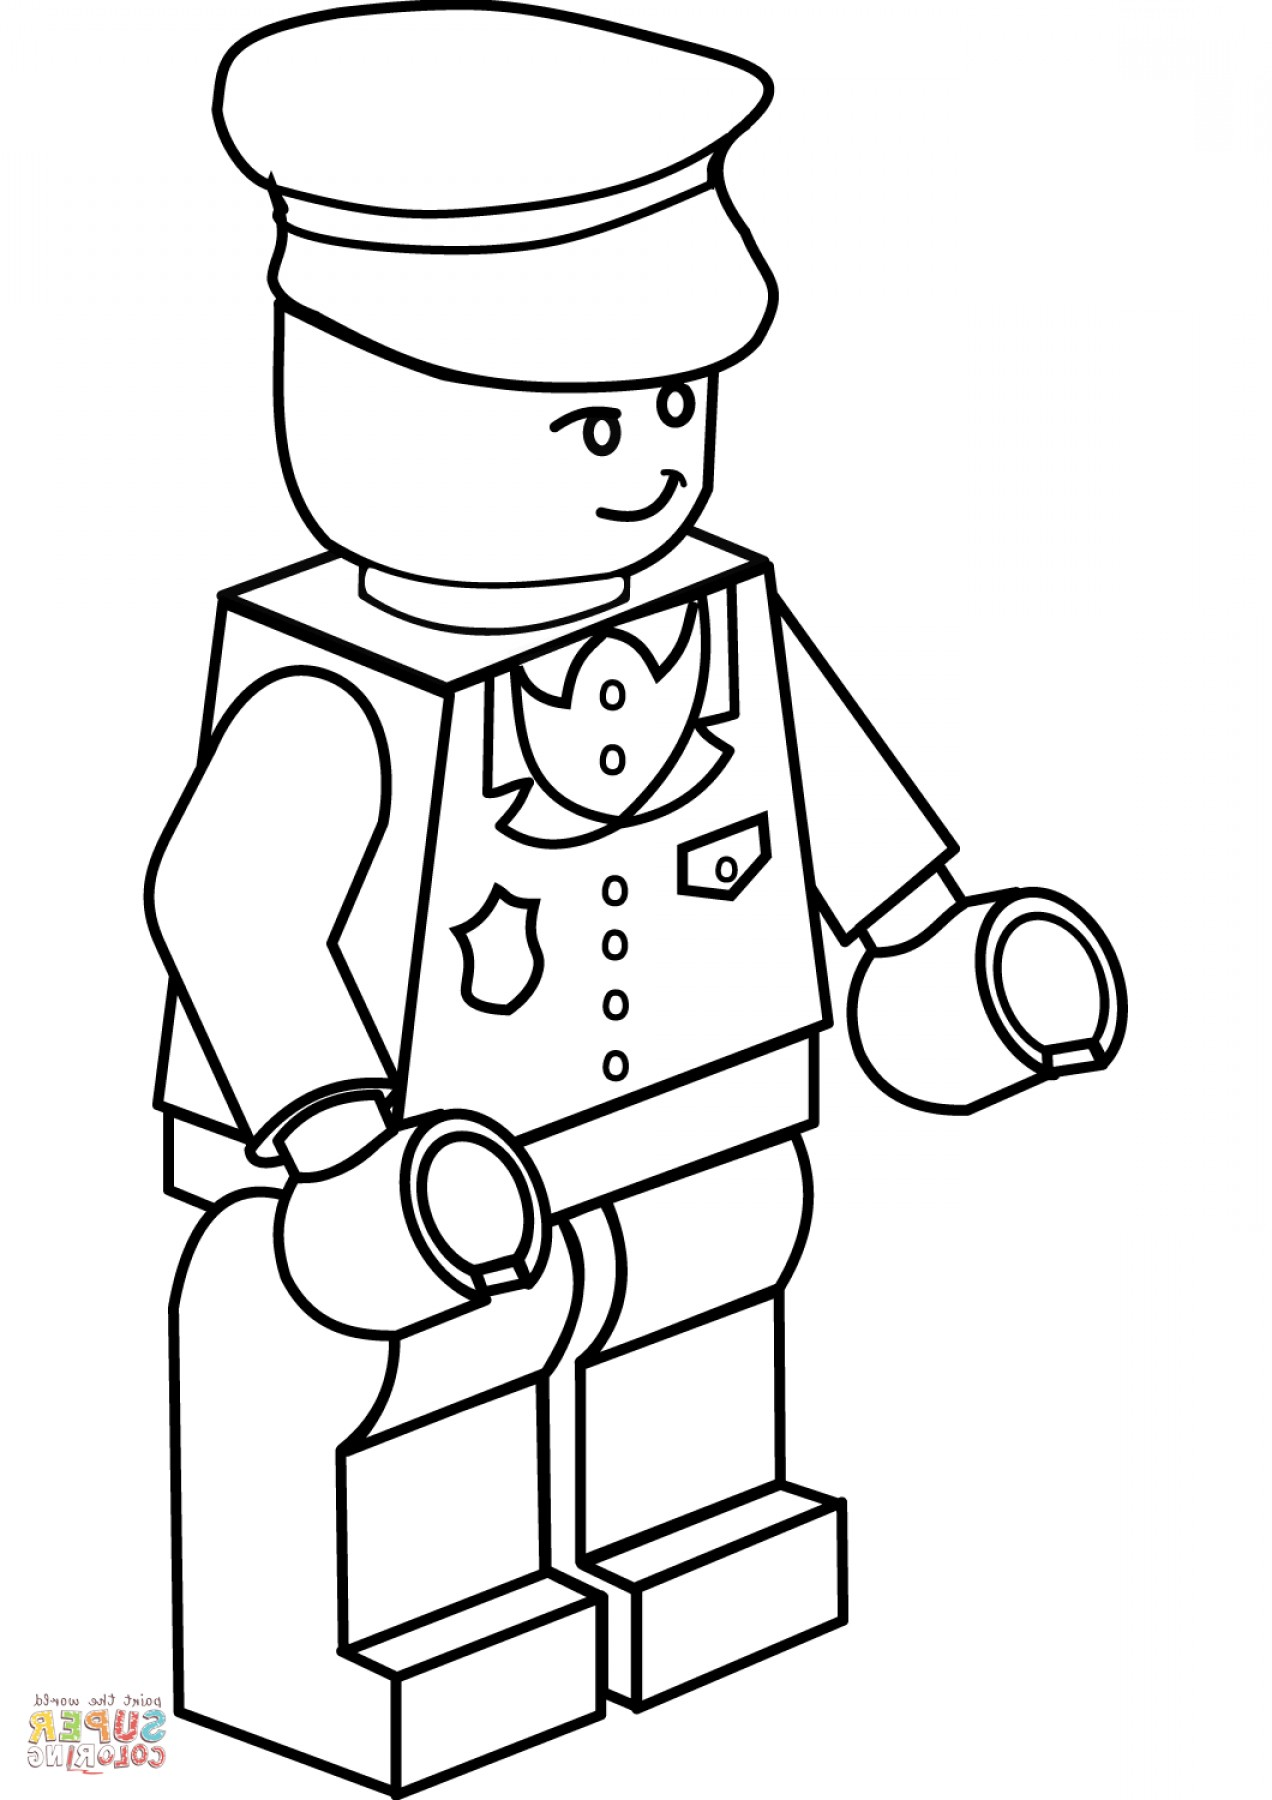 lego people coloring pages legomanracecardriverpdf people coloring pages lego lego pages people coloring